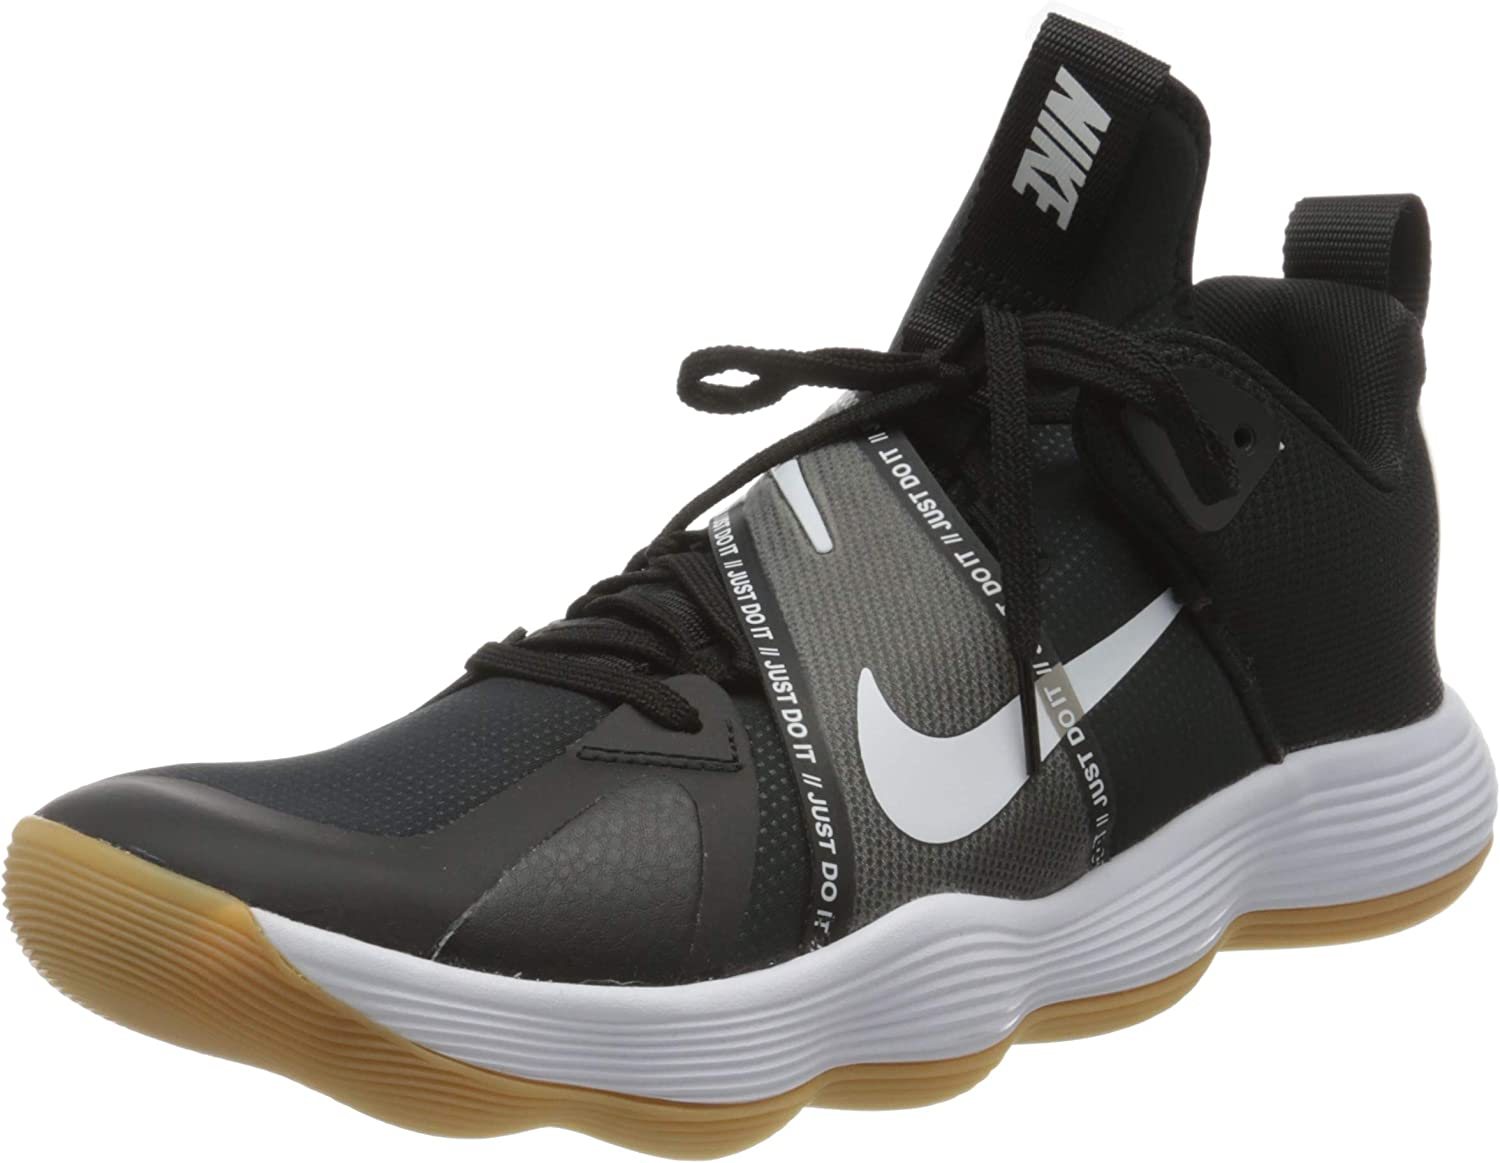 Nike Men's Volleyball Shoes